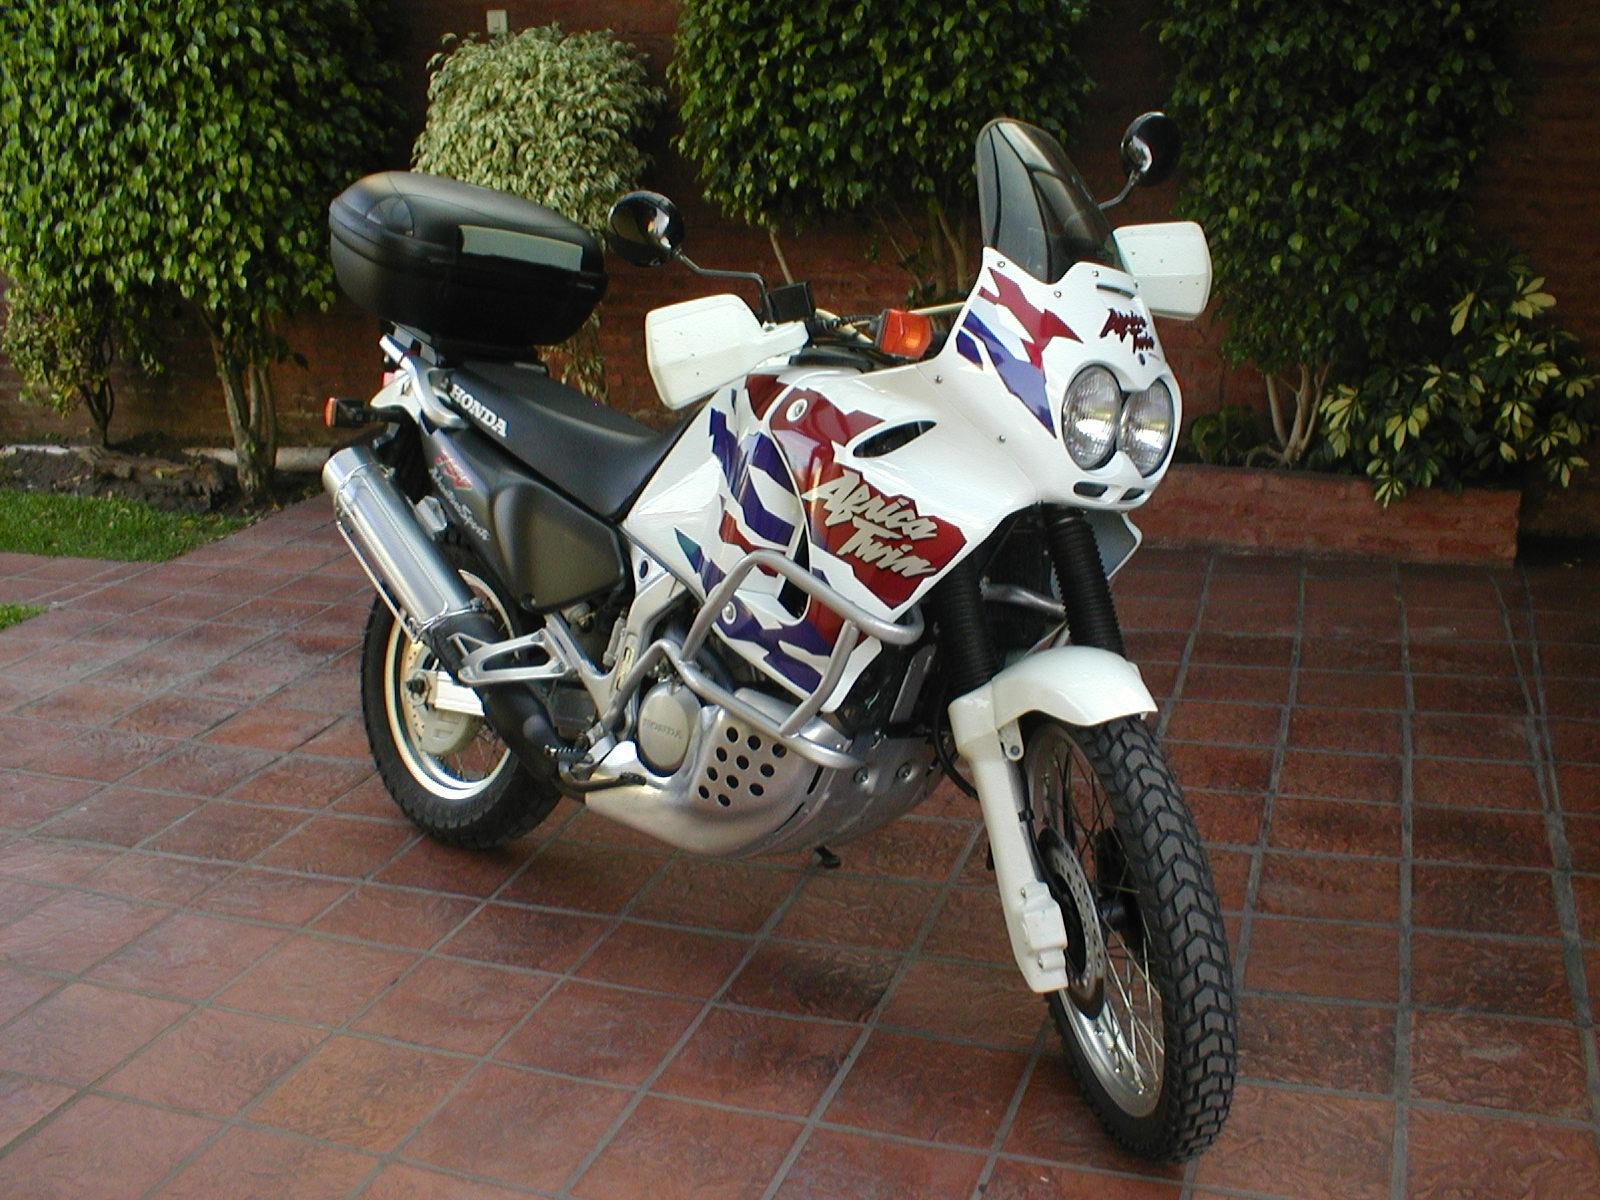 Honda XRV 750 Africa Twin photo 25178